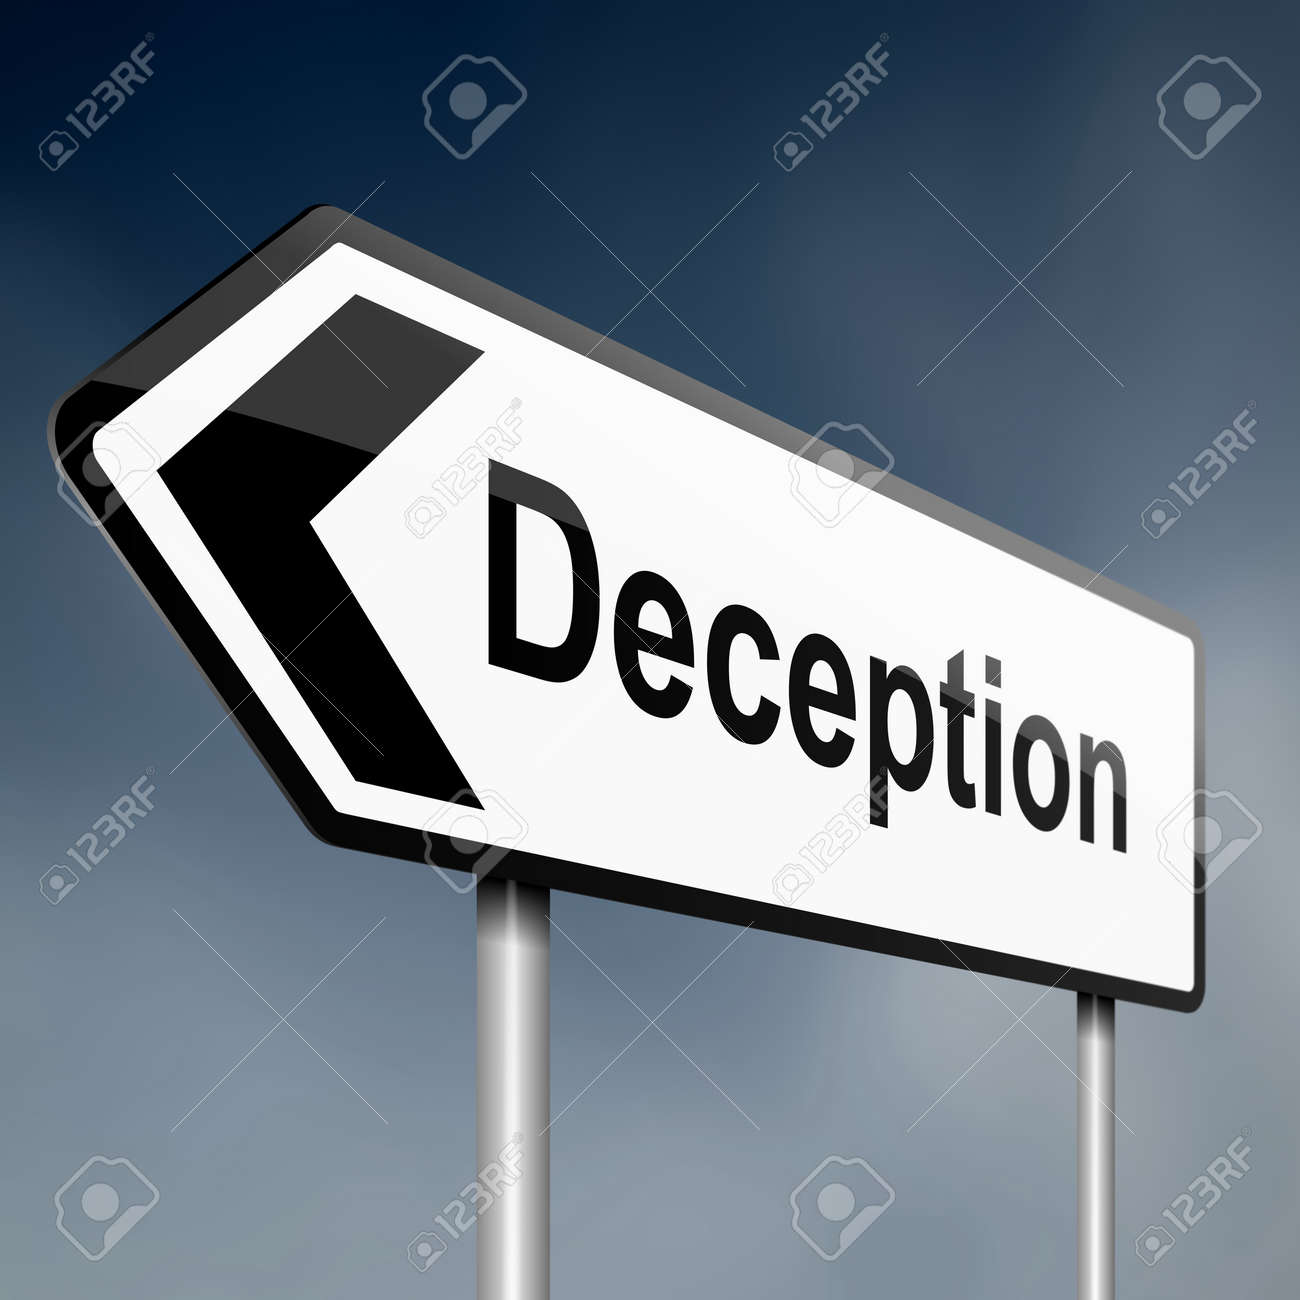 illustration depicting a sign post with directional arrow containing a deception concept. Blurred background. Stock Illustration - 13565494